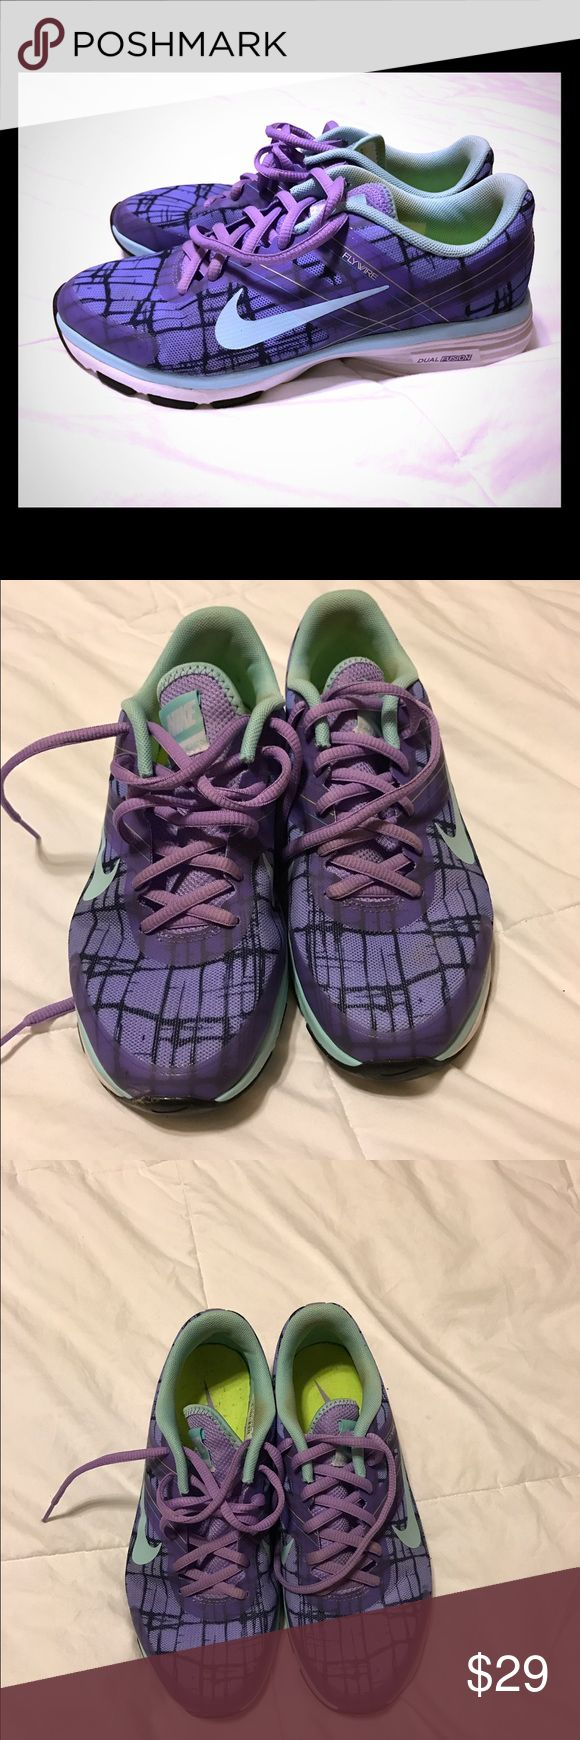 Nike Dual Fusion Nike Dual Fusion. Size 6.5. Great condition! Nike Shoes Sneakers